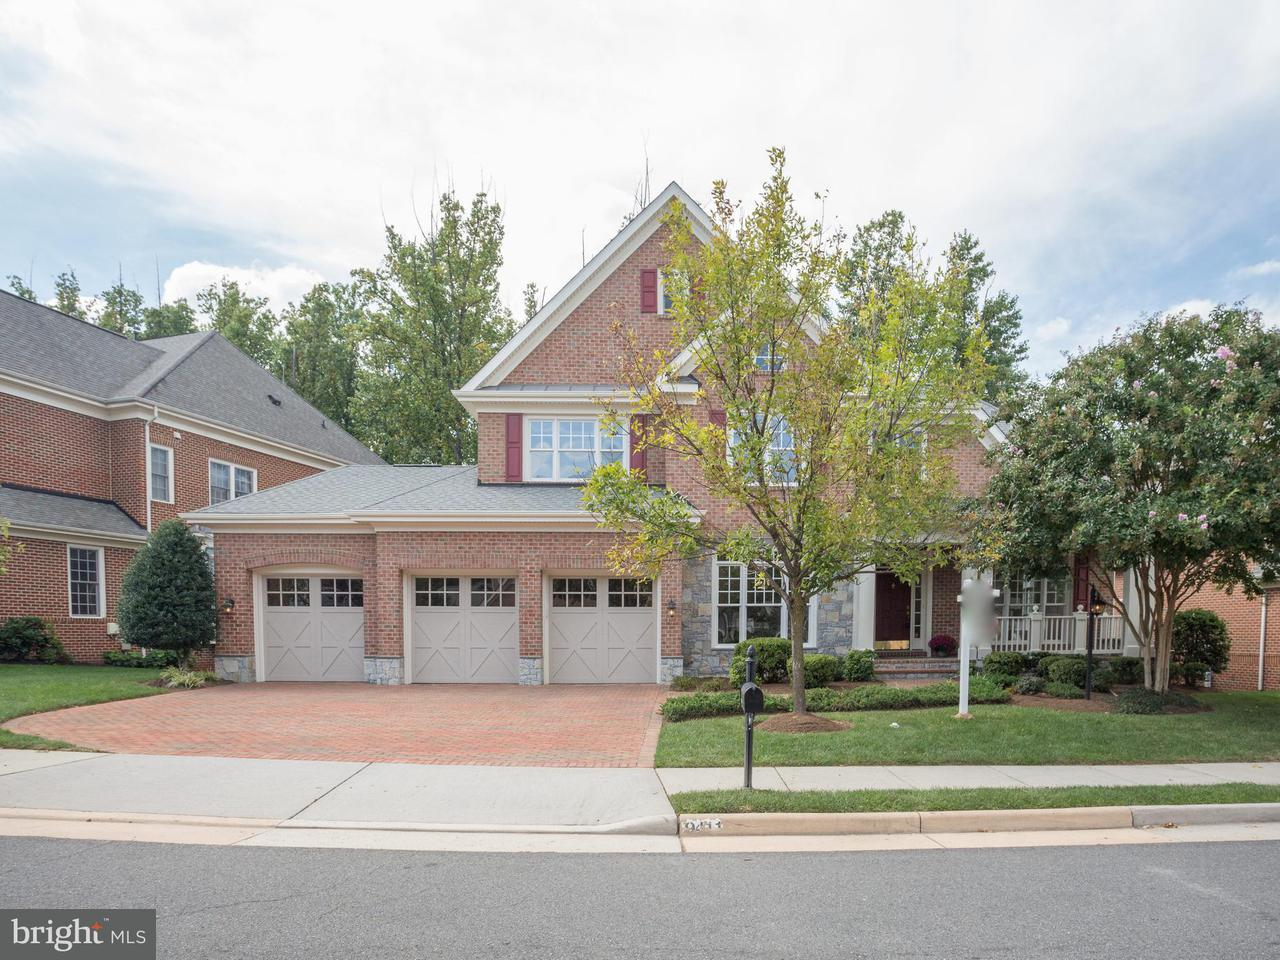 Single Family Home for Sale at 9411 OLD RESERVE WAY 9411 OLD RESERVE WAY Fairfax, Virginia 22031 United States